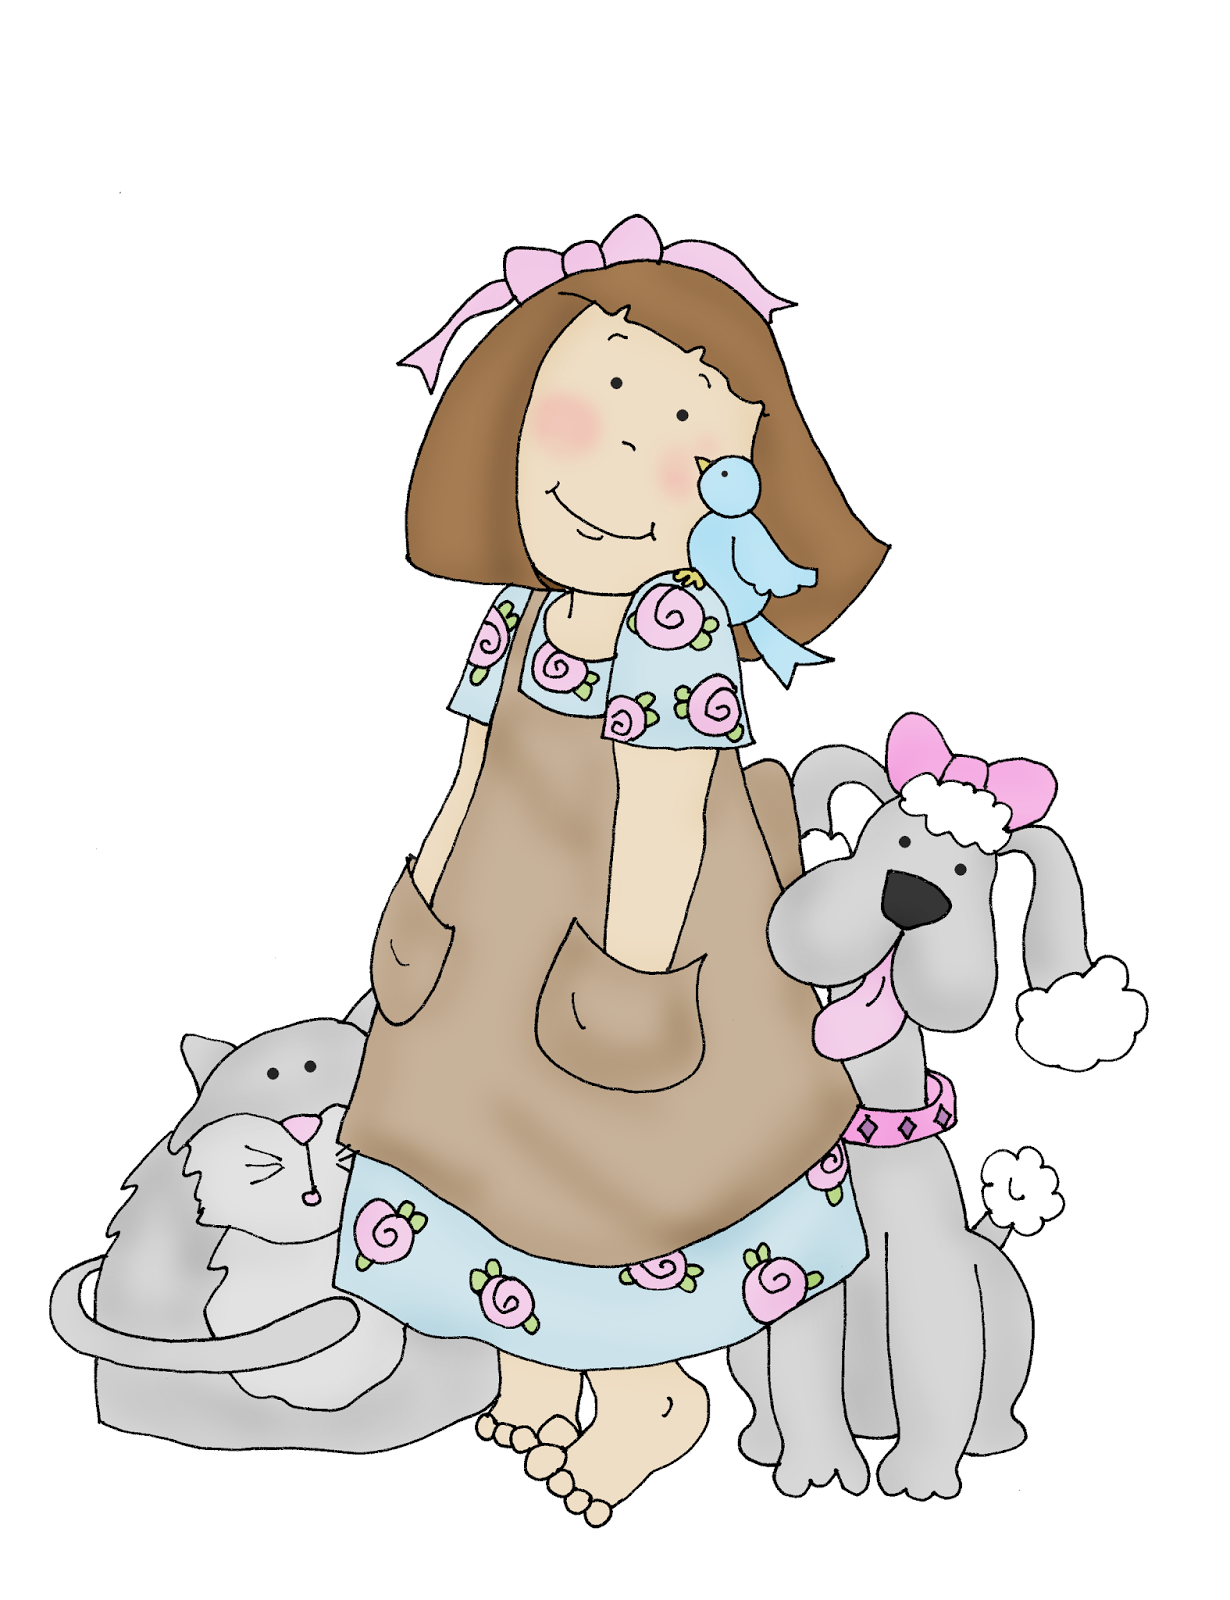 Free Dearie Dolls Digi Stamps: Girl with Pets